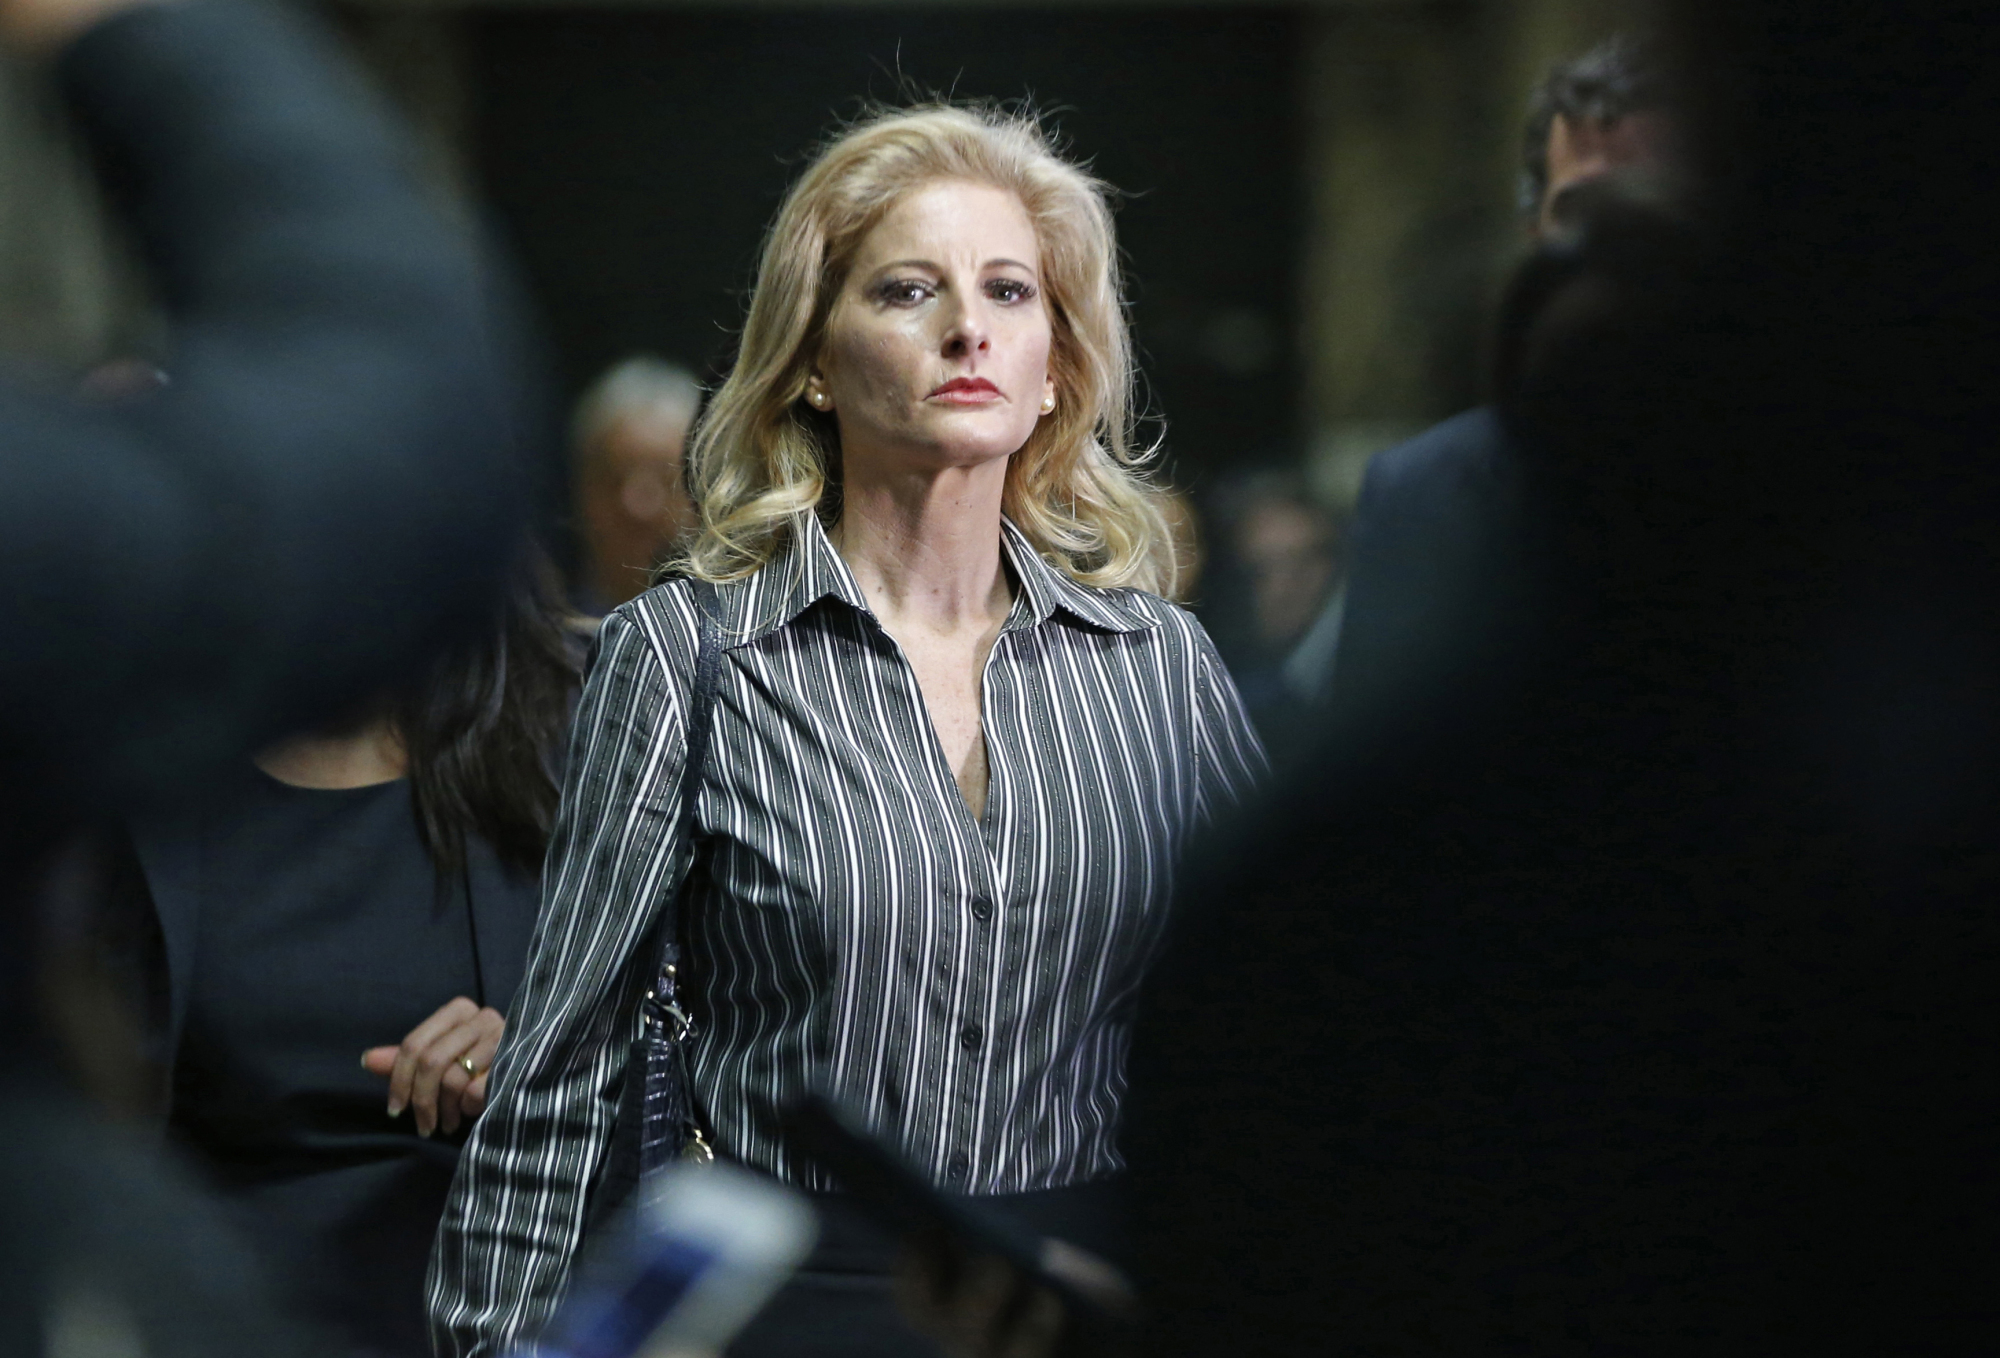 Summer Zervos leaves Manhattan Supreme Court at the conclusion of a hearing in New York in December. On Thursday, the New York Court of Appeals turned down President Donald Trump's latest bid to delay a defamation suit filed by the former contestant on 'The Apprentice,' who accused him of unwanted groping and kissing. Zervos says Trump made unwanted advances in 2007, then defamed her by saying she lied. | AP